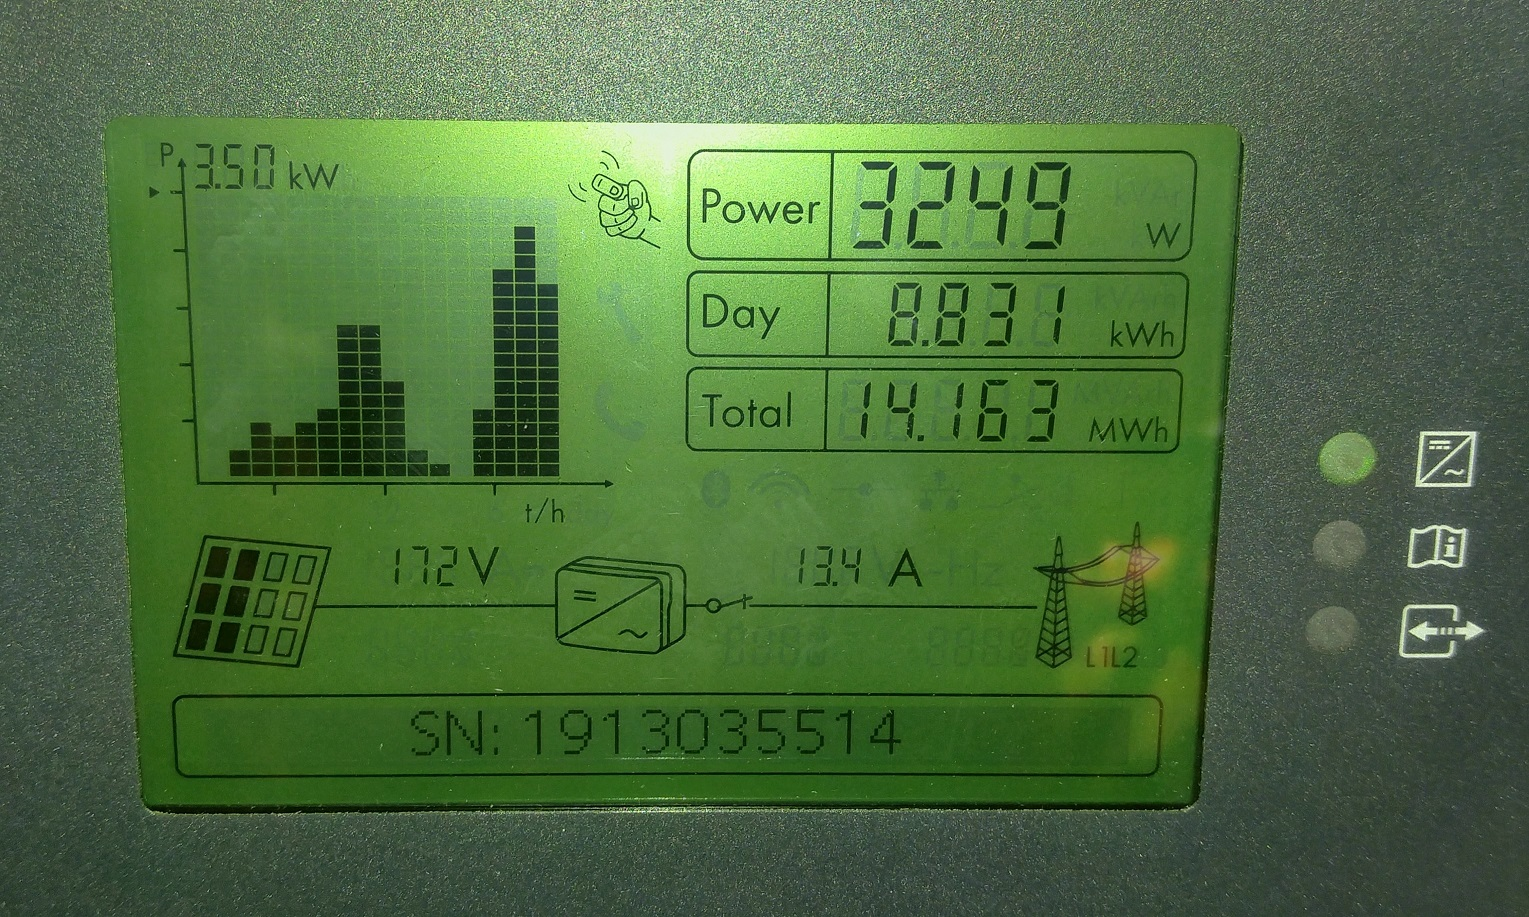 Solar Power Cost - Central Inverter Display